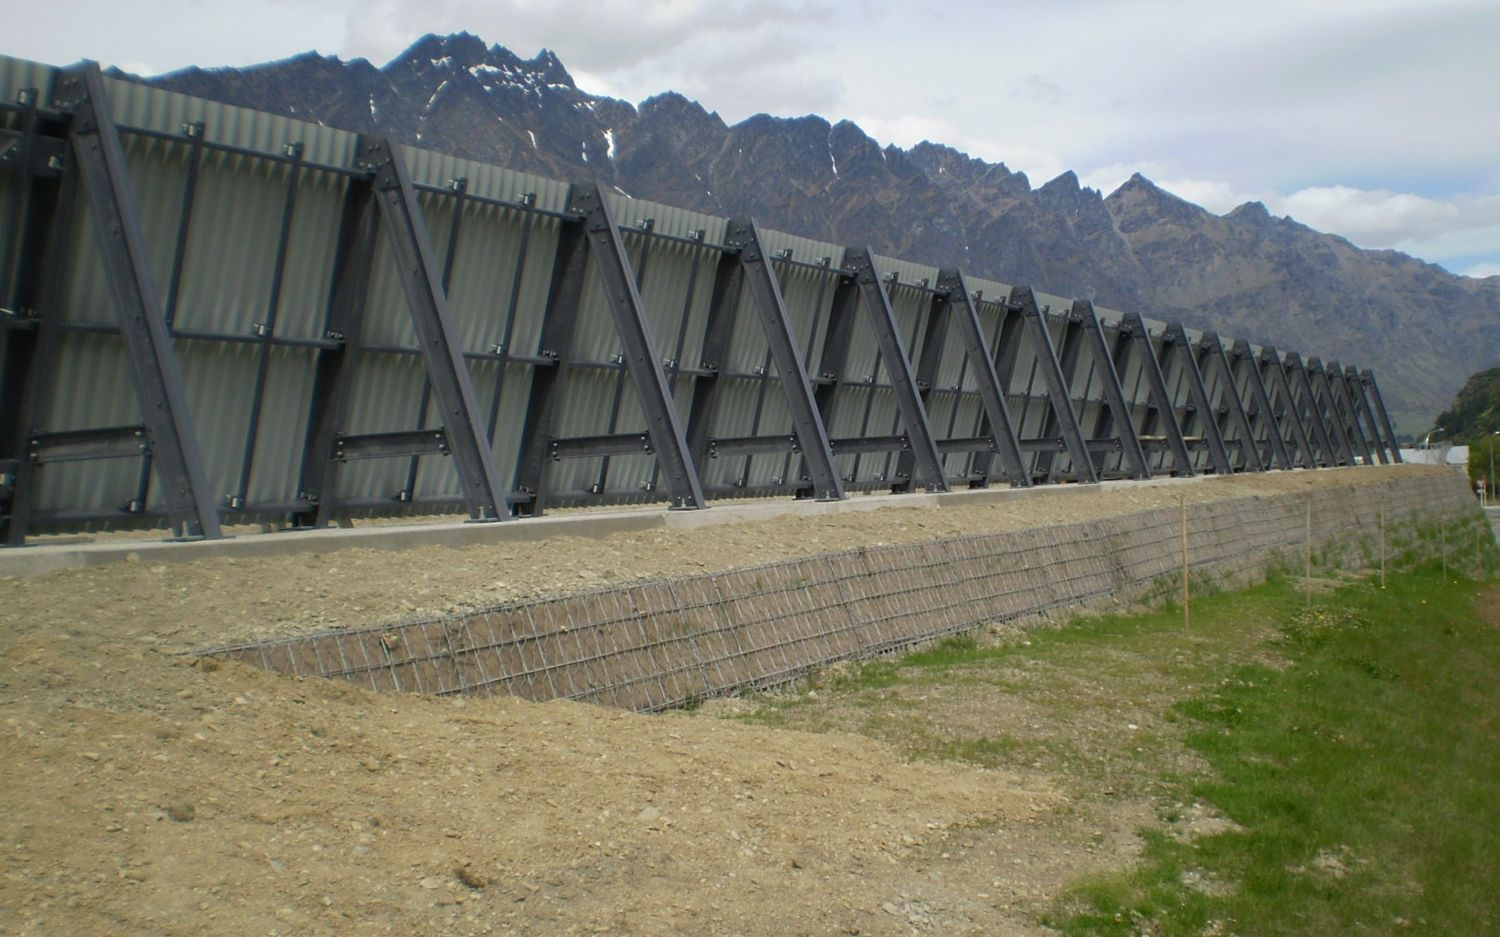 Completed in 2011, this project is composed of a short Blastwall segment protecting an adjacent public road.